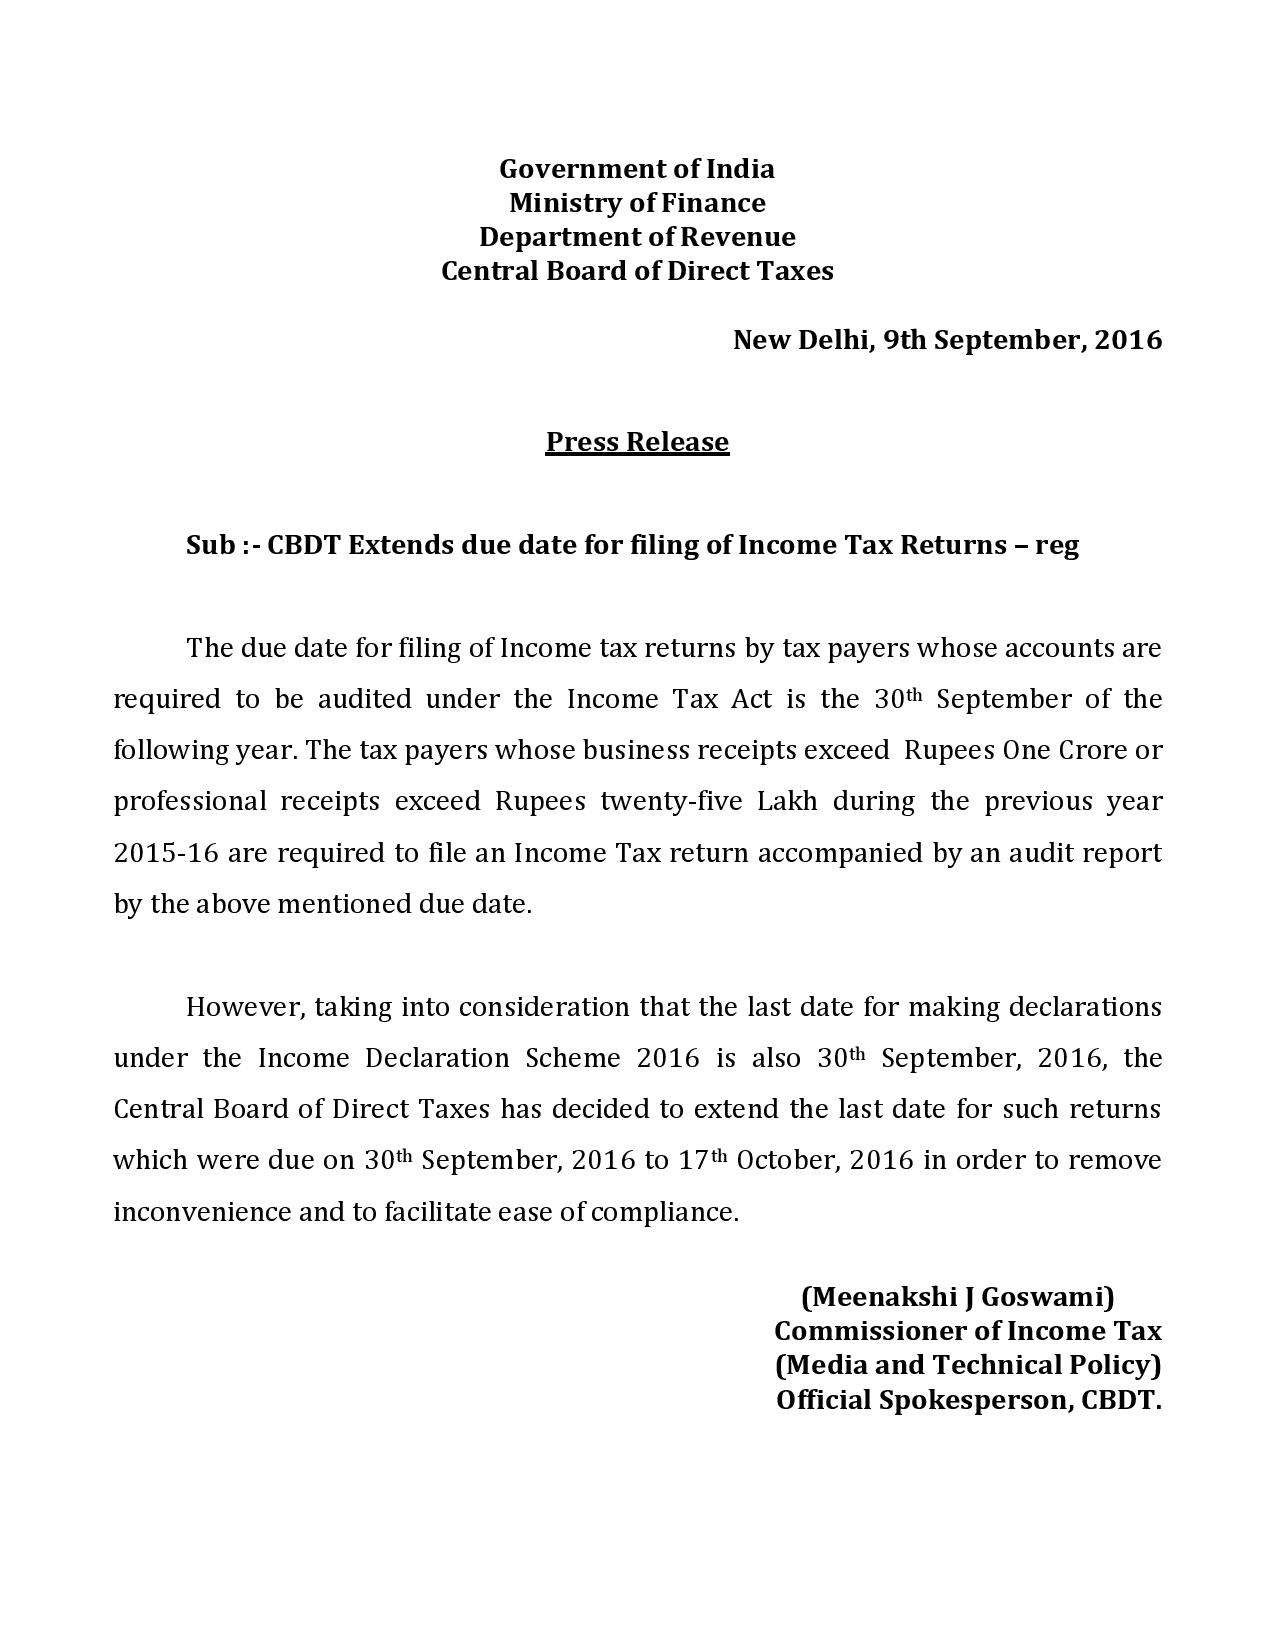 Due Date of ITR Extended for Audit Cases to 17 October 2016 (Official Press Release Attached) - Compulsory Audit and Books Requirement